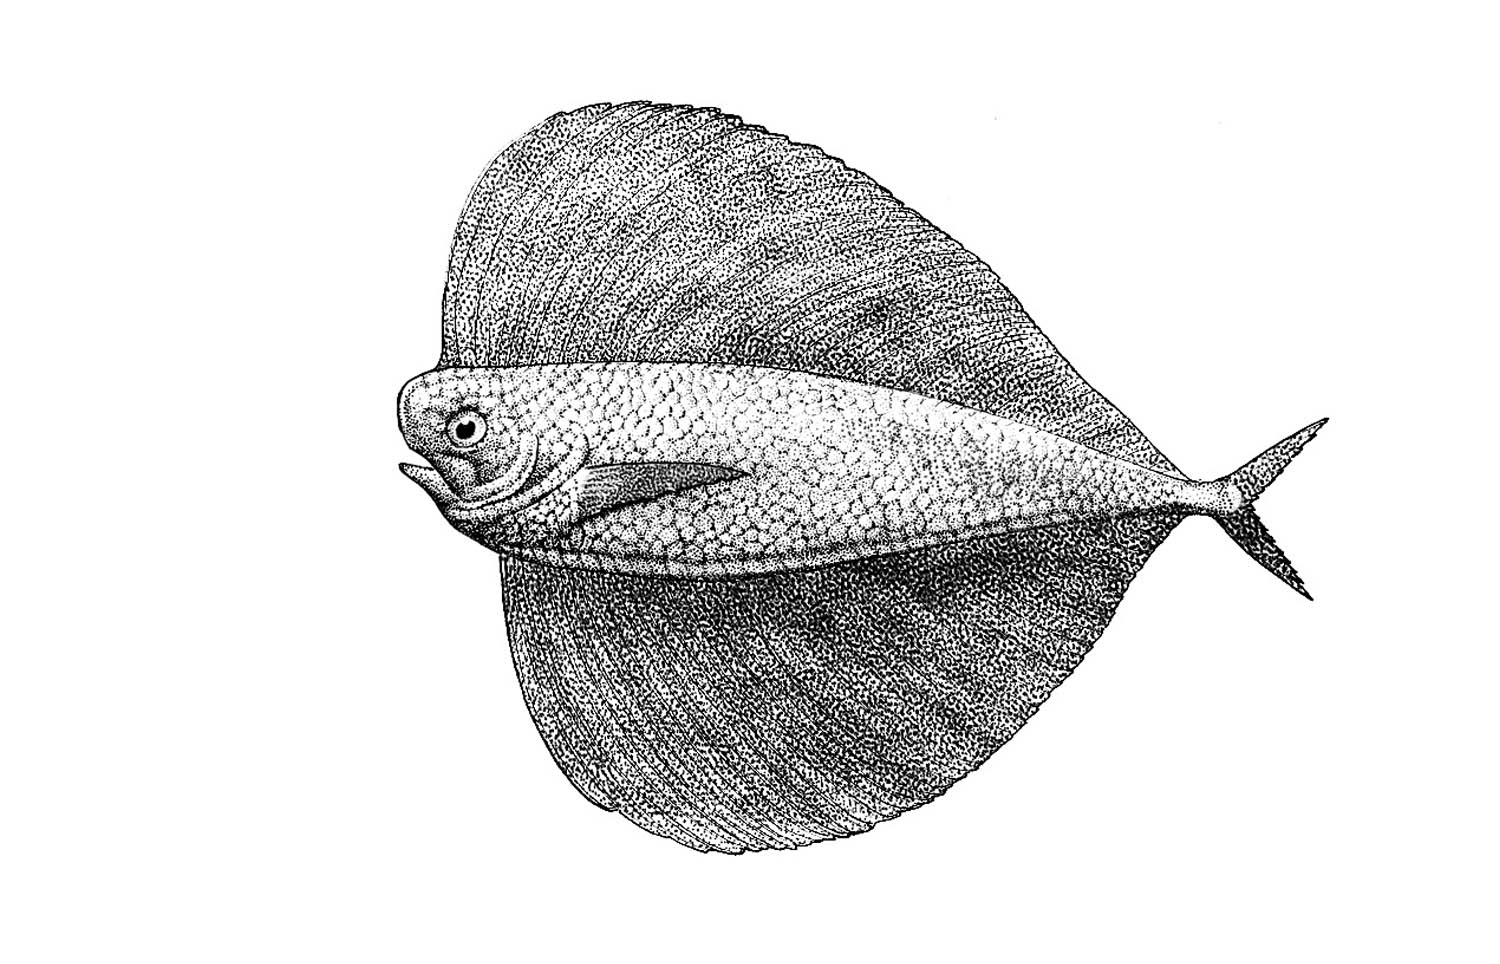 Pacific Fanfish